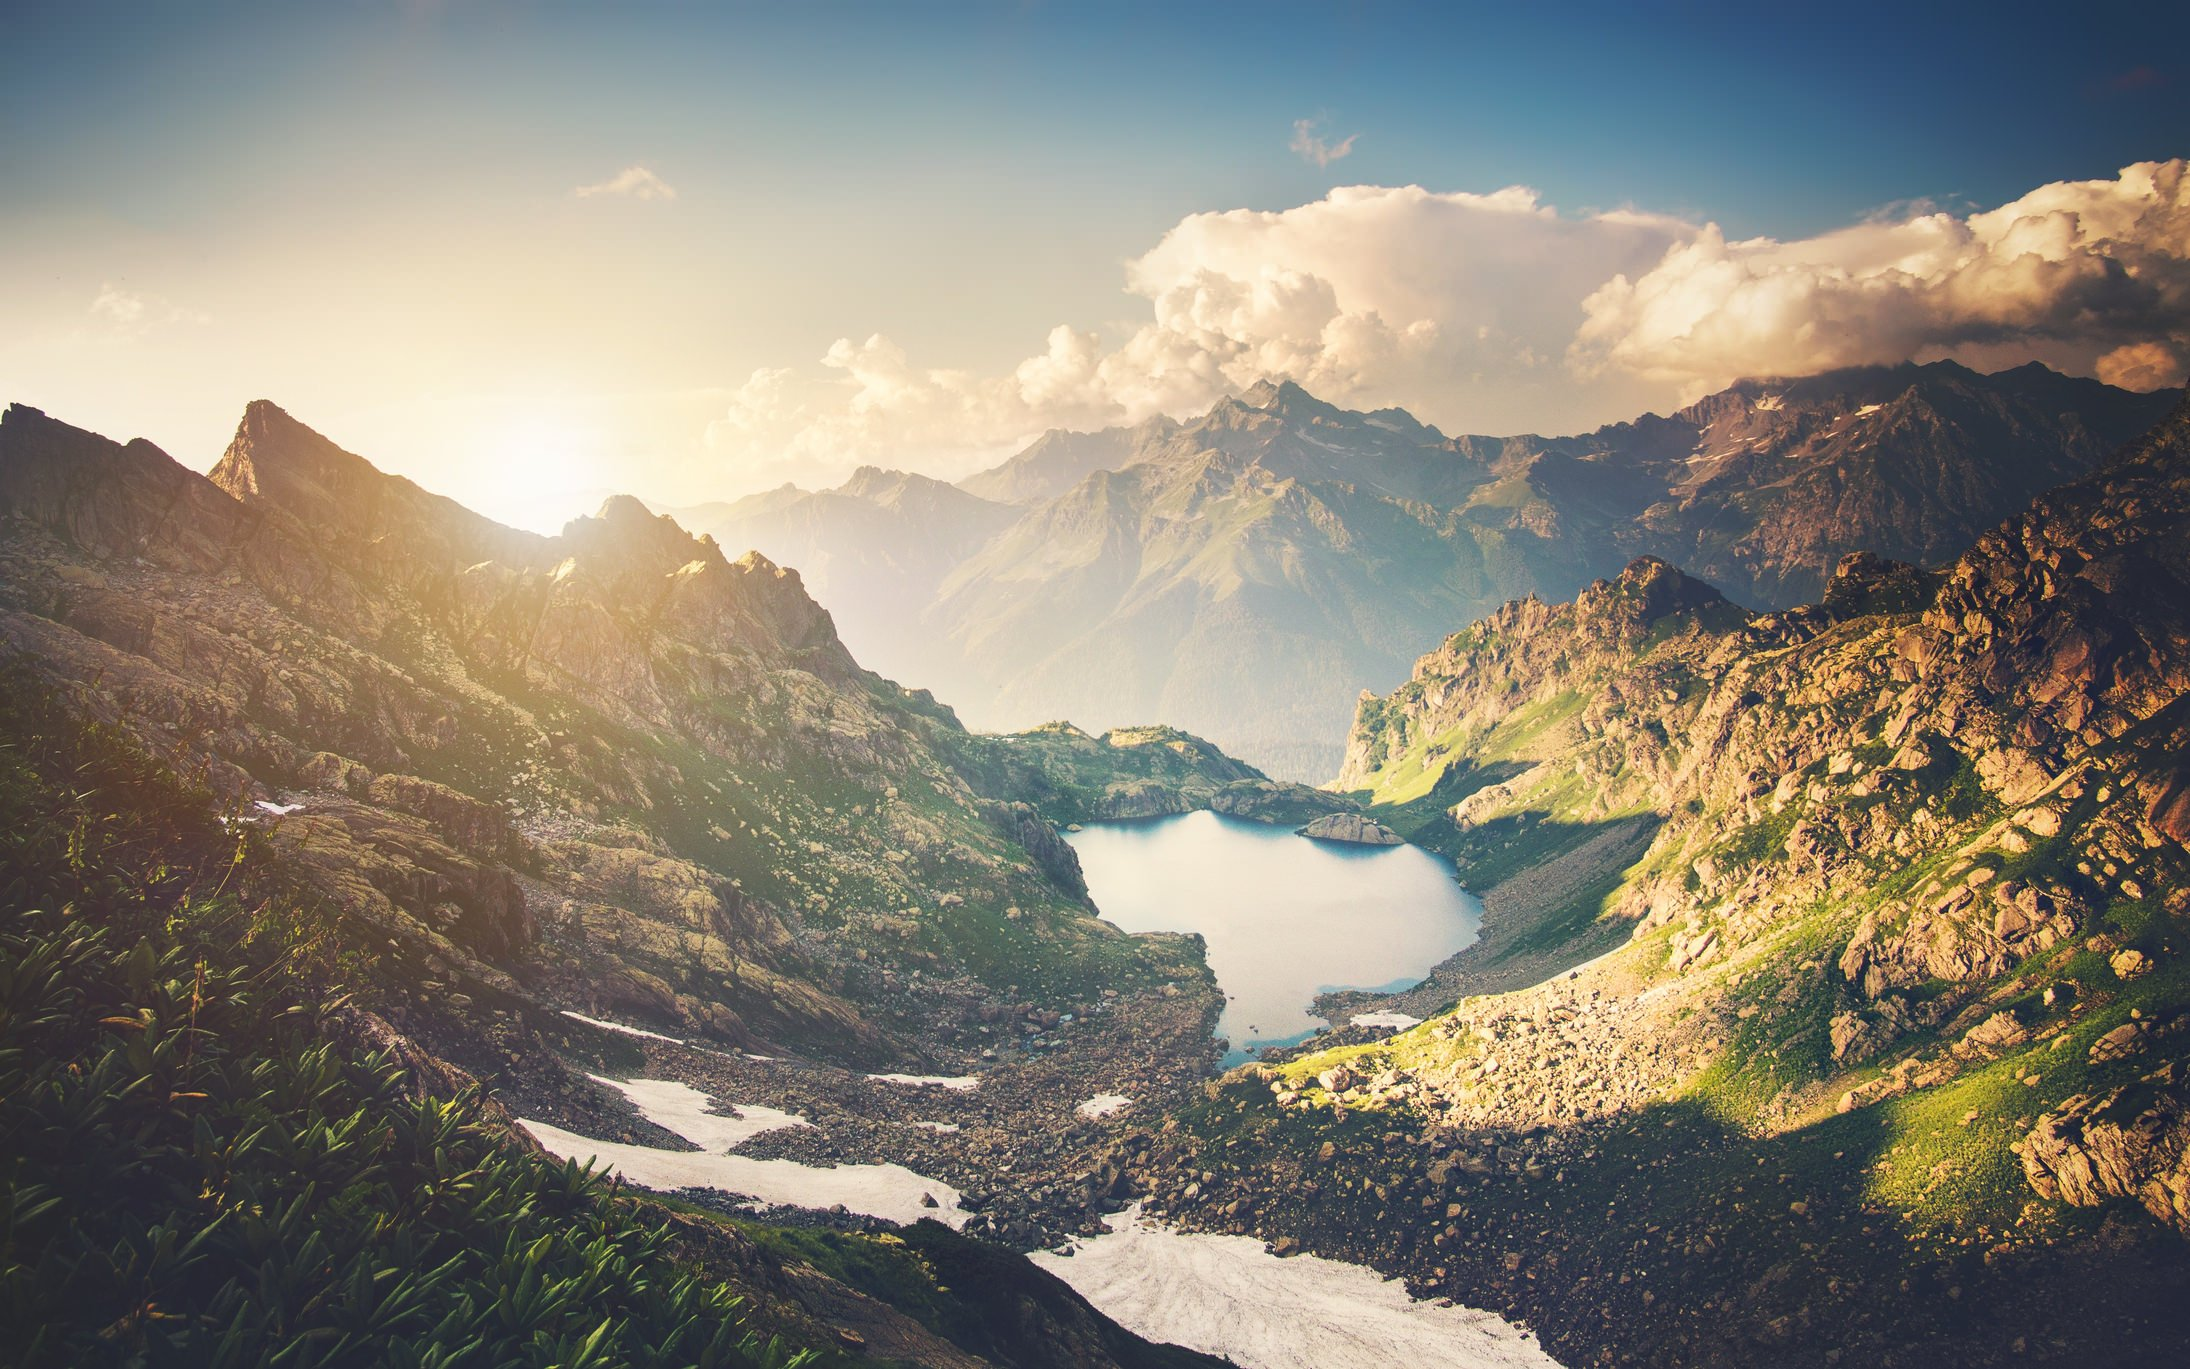 Best Camera Settings for Landscape graphy #0: iStock